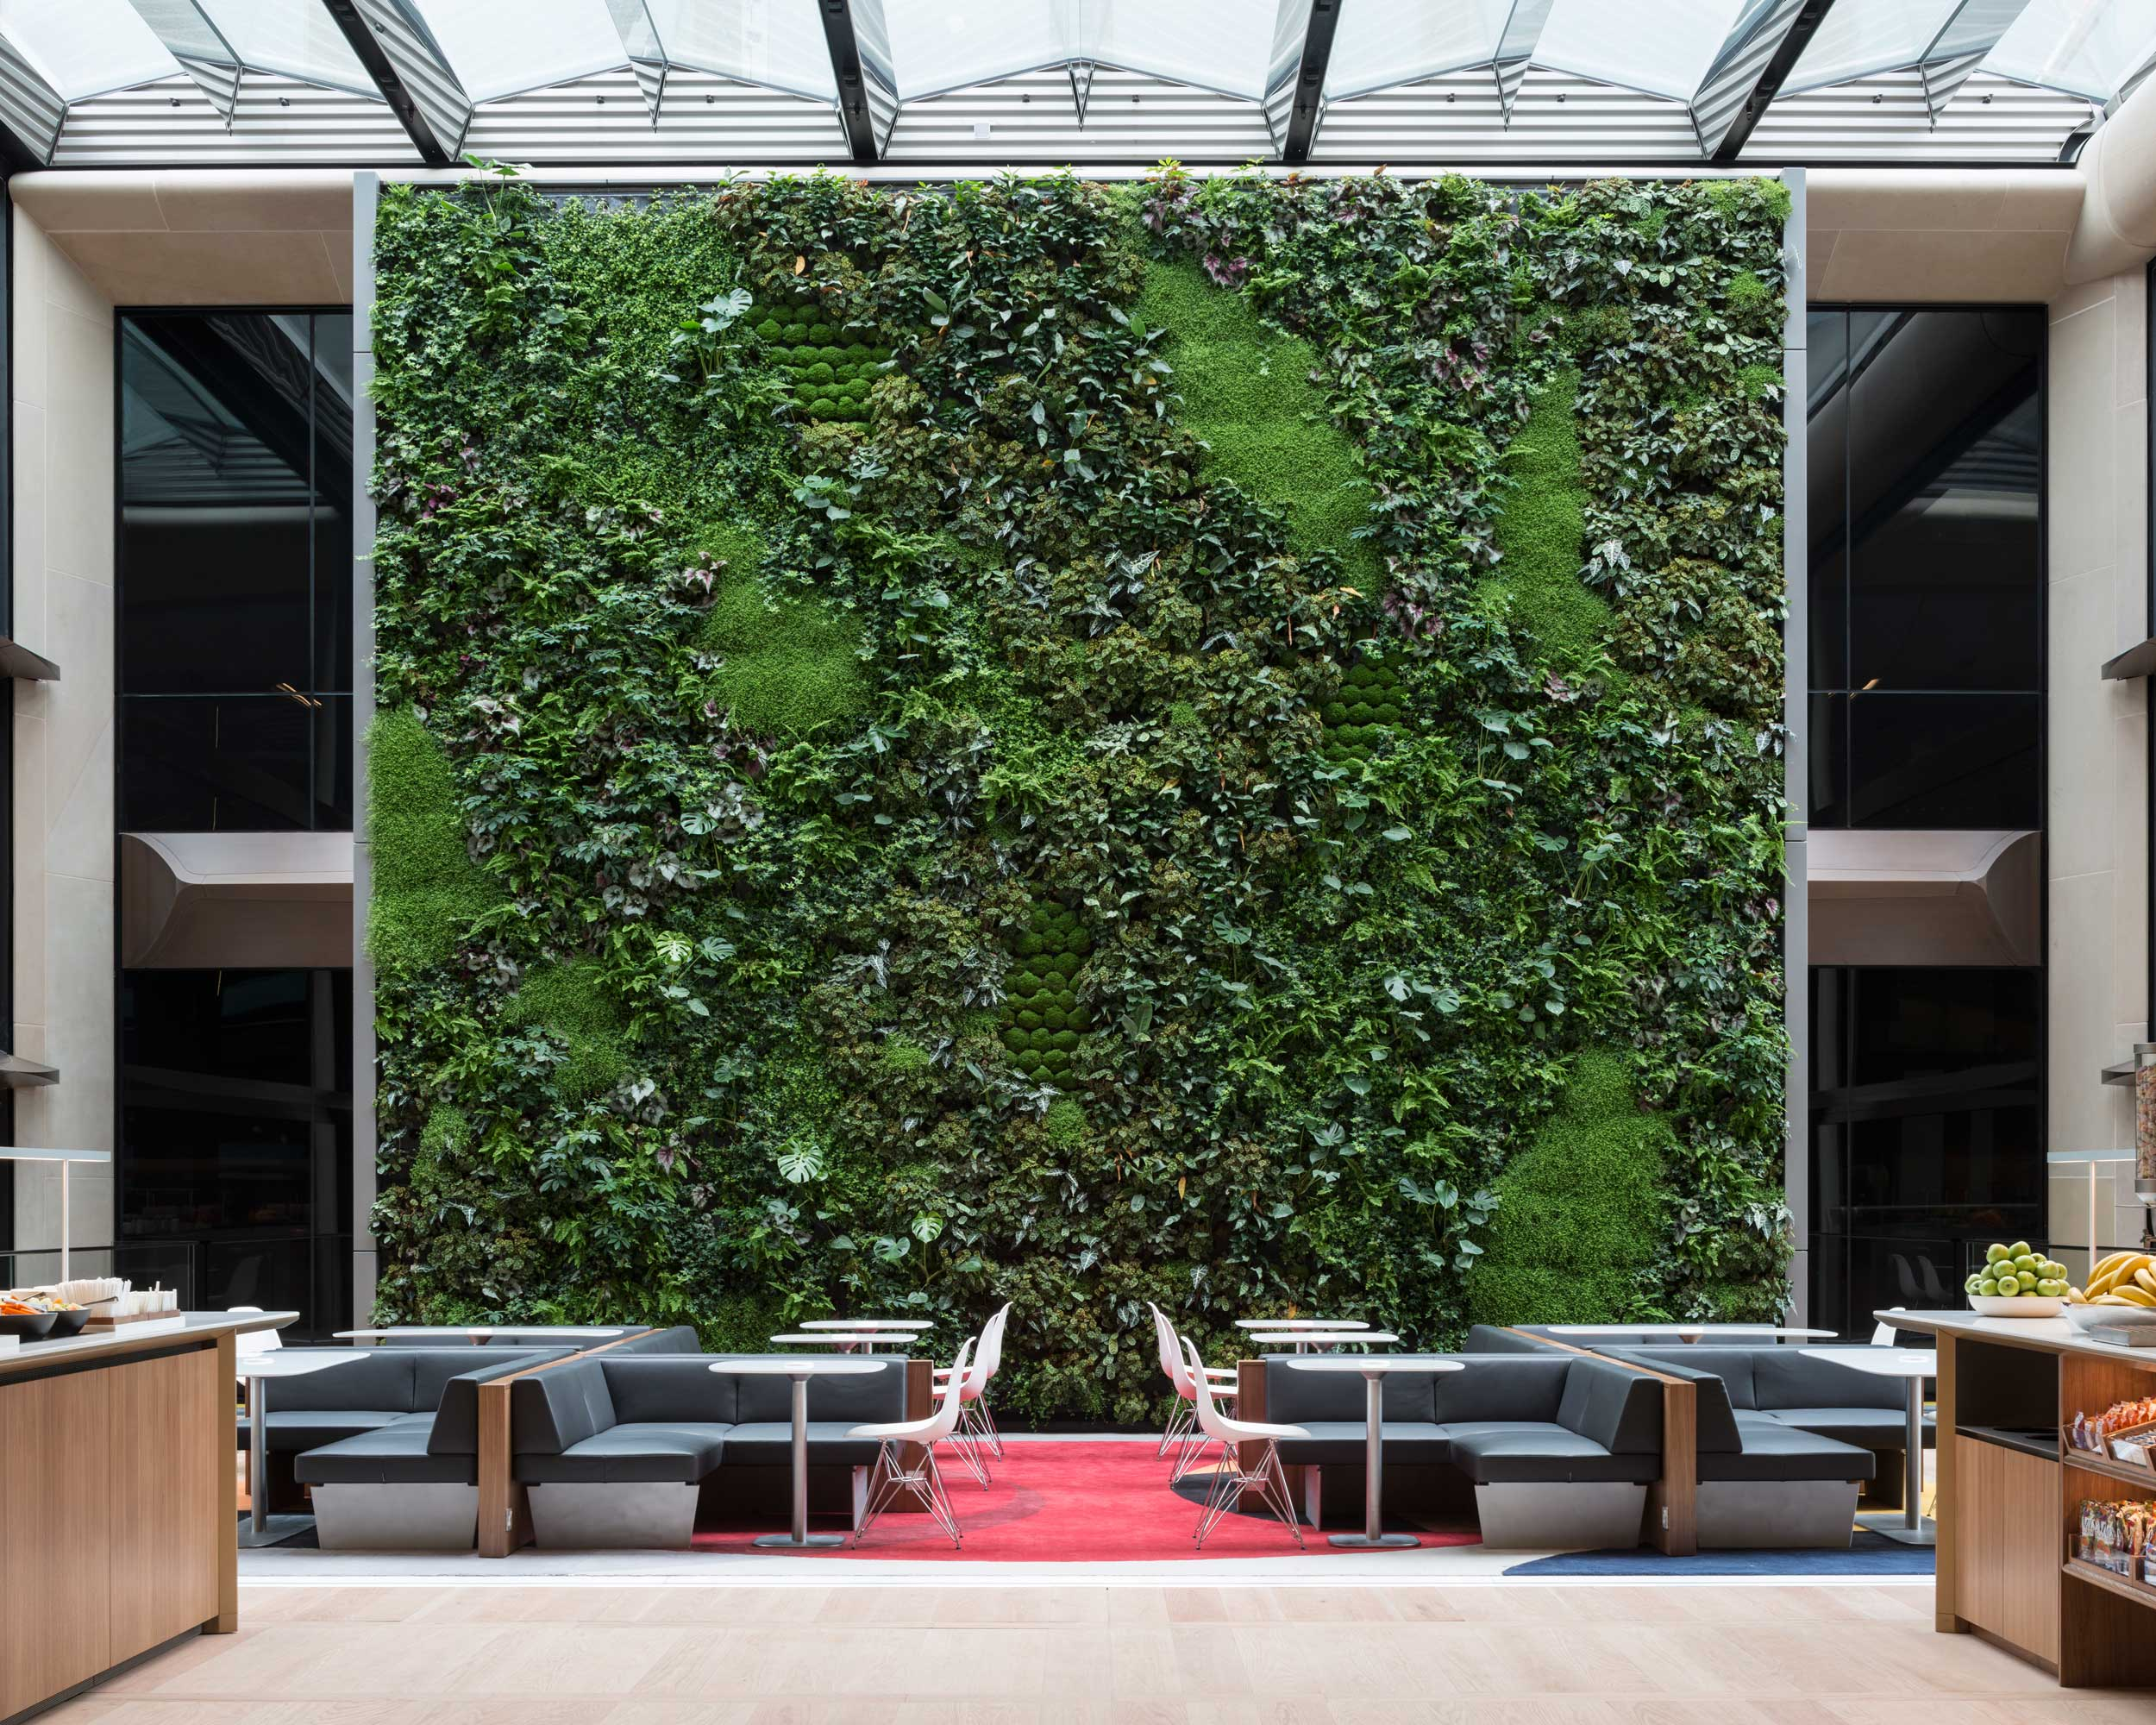 Bloomberg European HQ Workplace - Living Wall